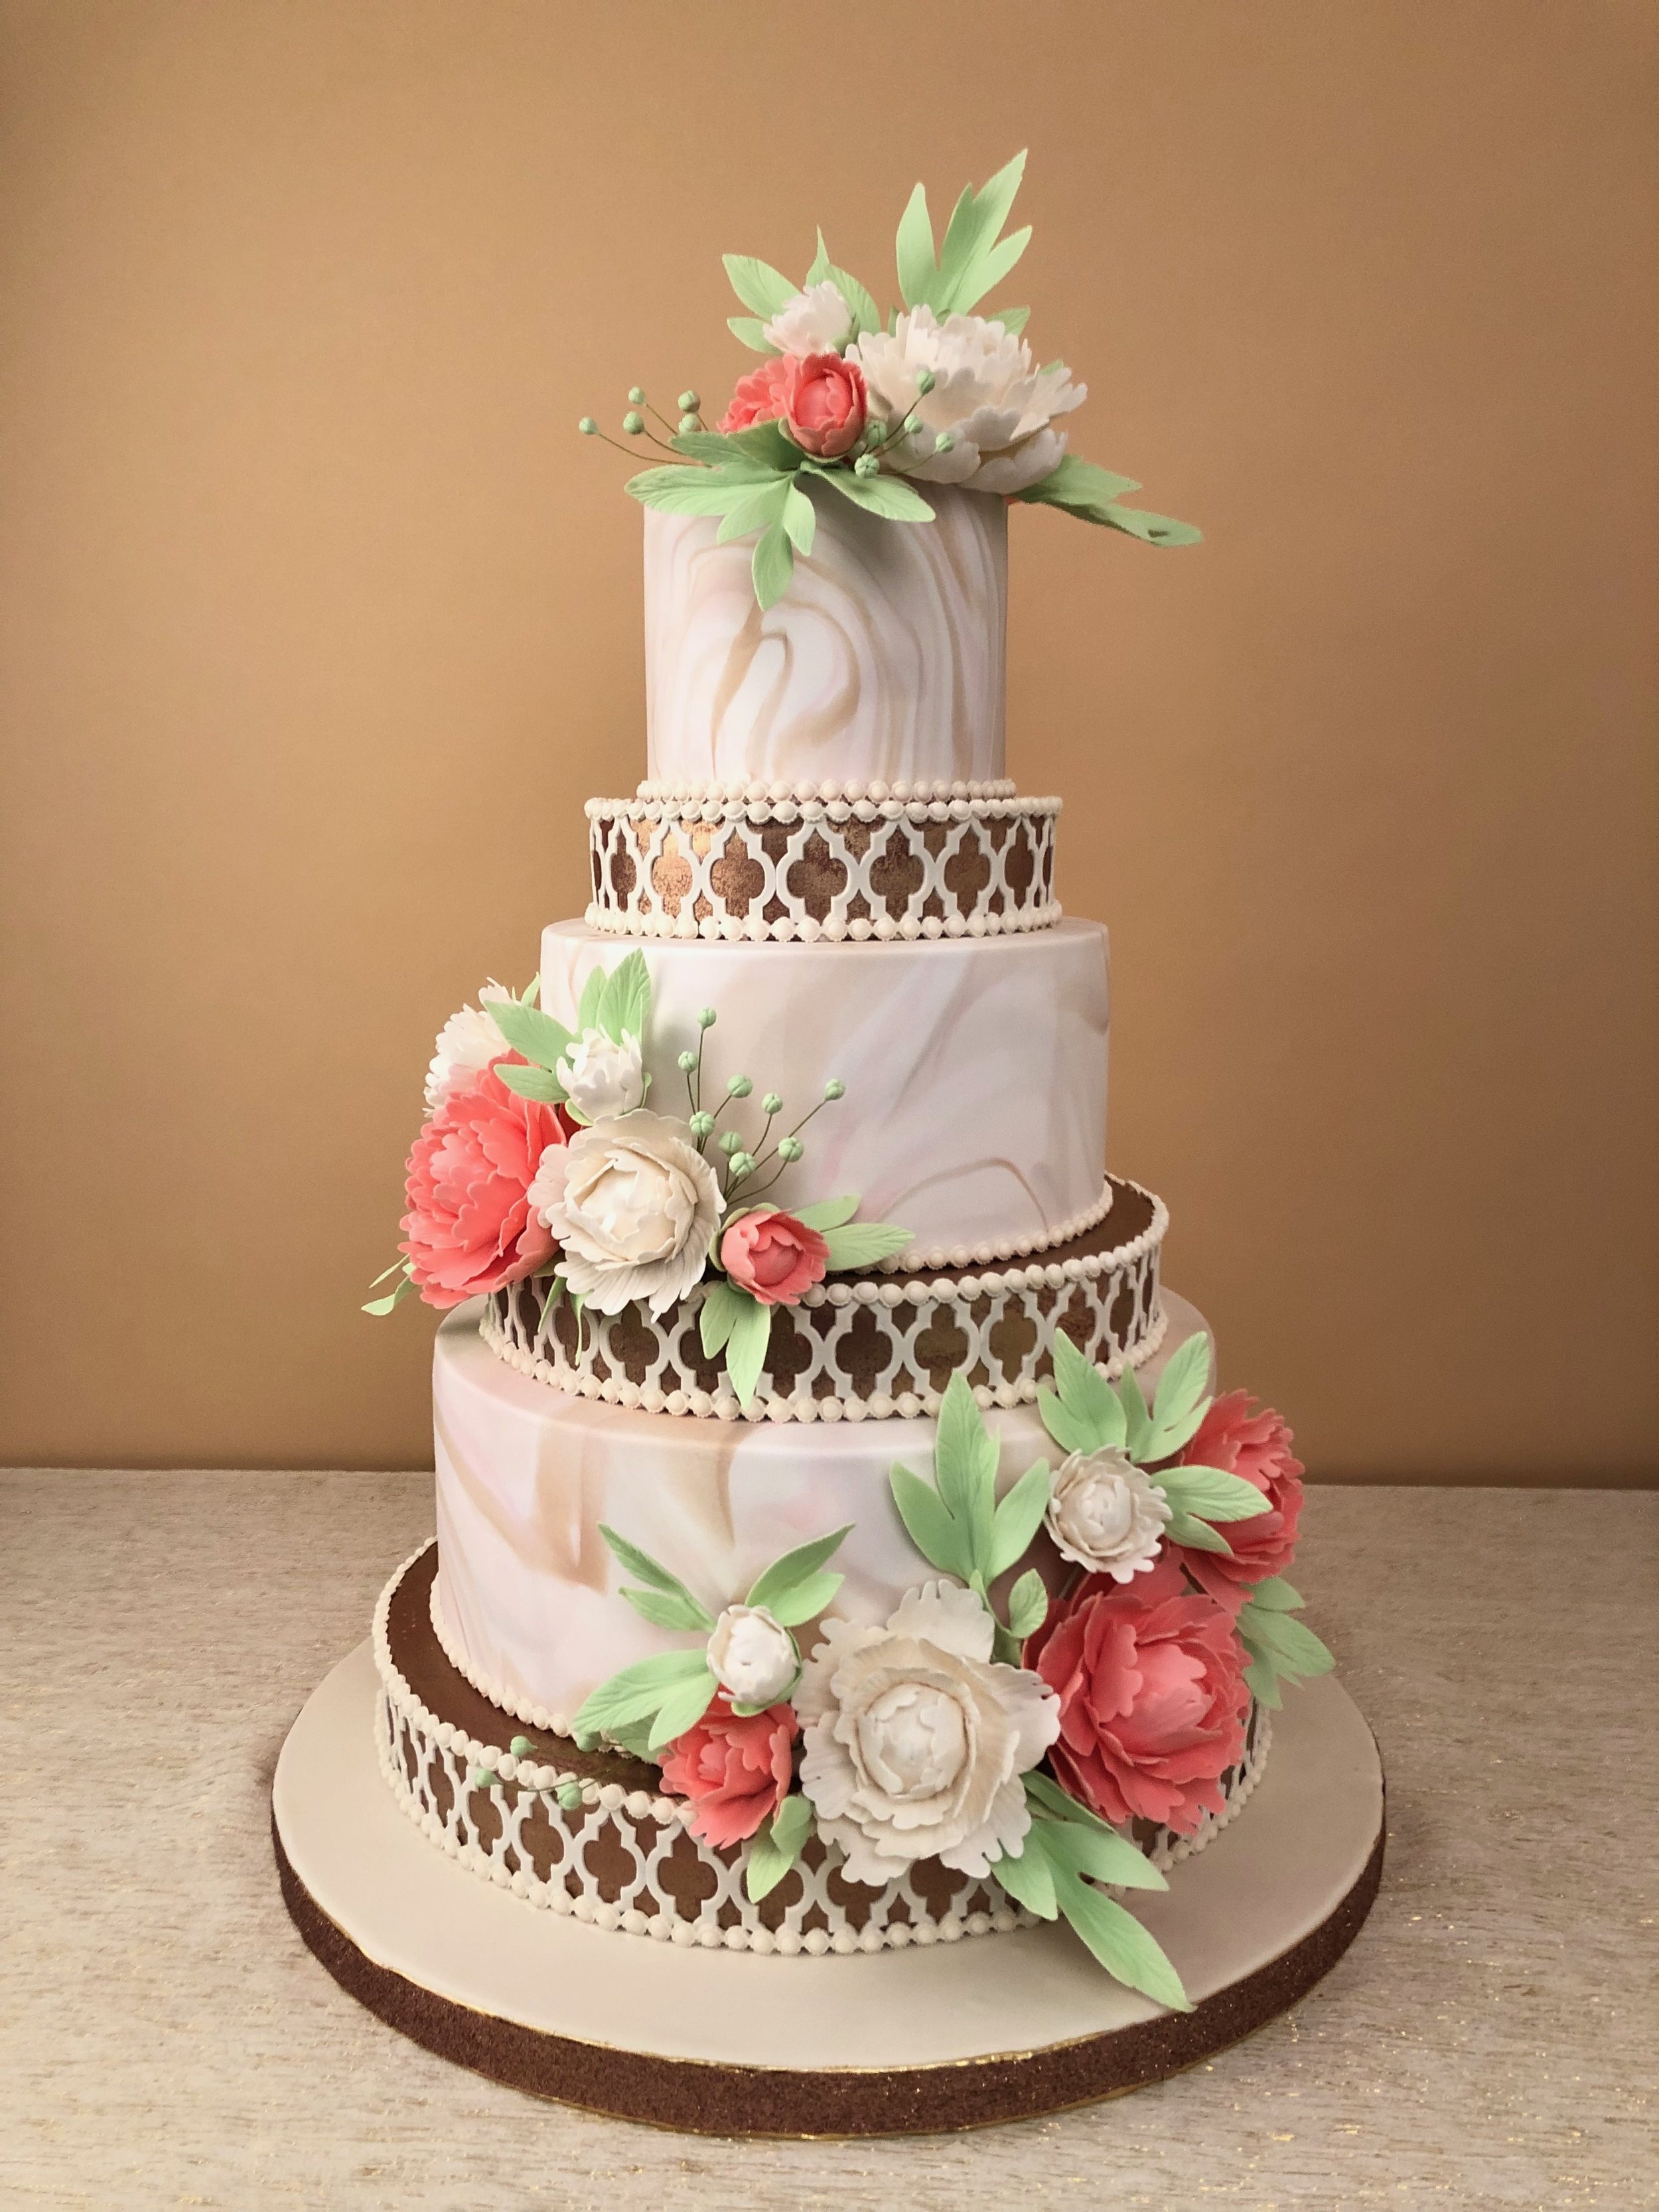 Six-Tiered Wedding Cake With Marbled Accents, Edible Rose Gold and Hand Sculpted Gum Paste Peonies. Published in (201) Best Of Bergen Magazine, February 2019 Issue.